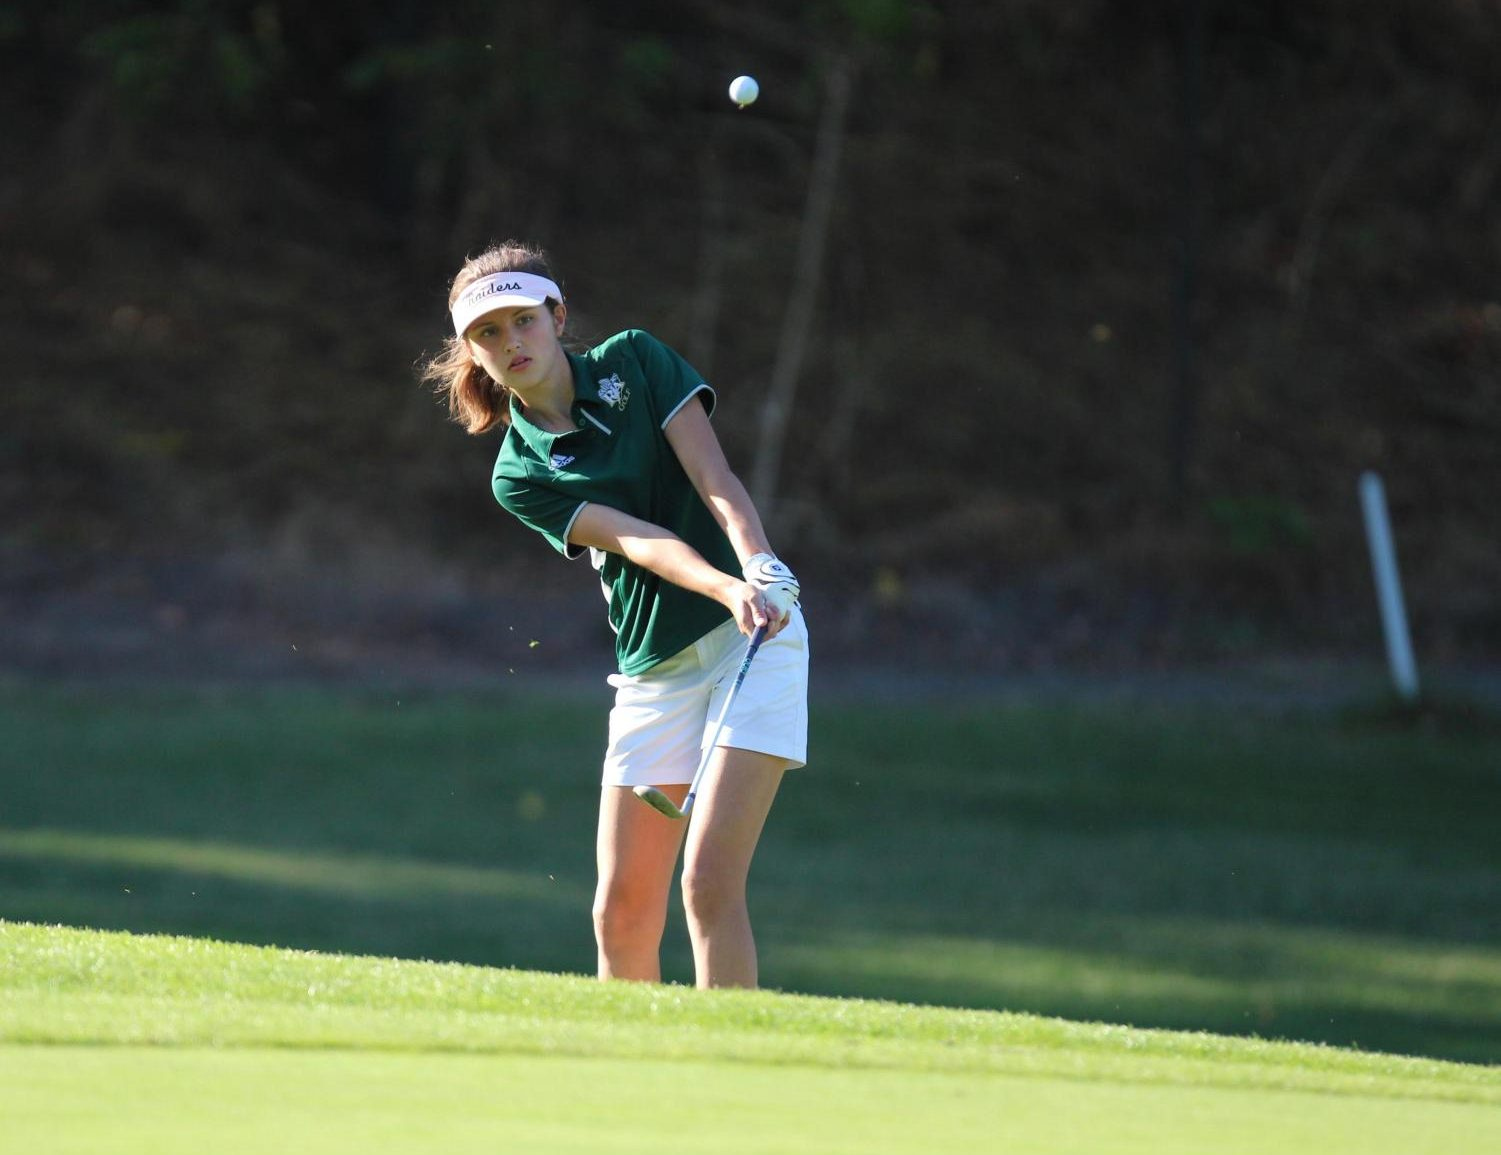 Junior Katelyn Kamilos chips the ball out of the rough. Photo by Ed Mahone.